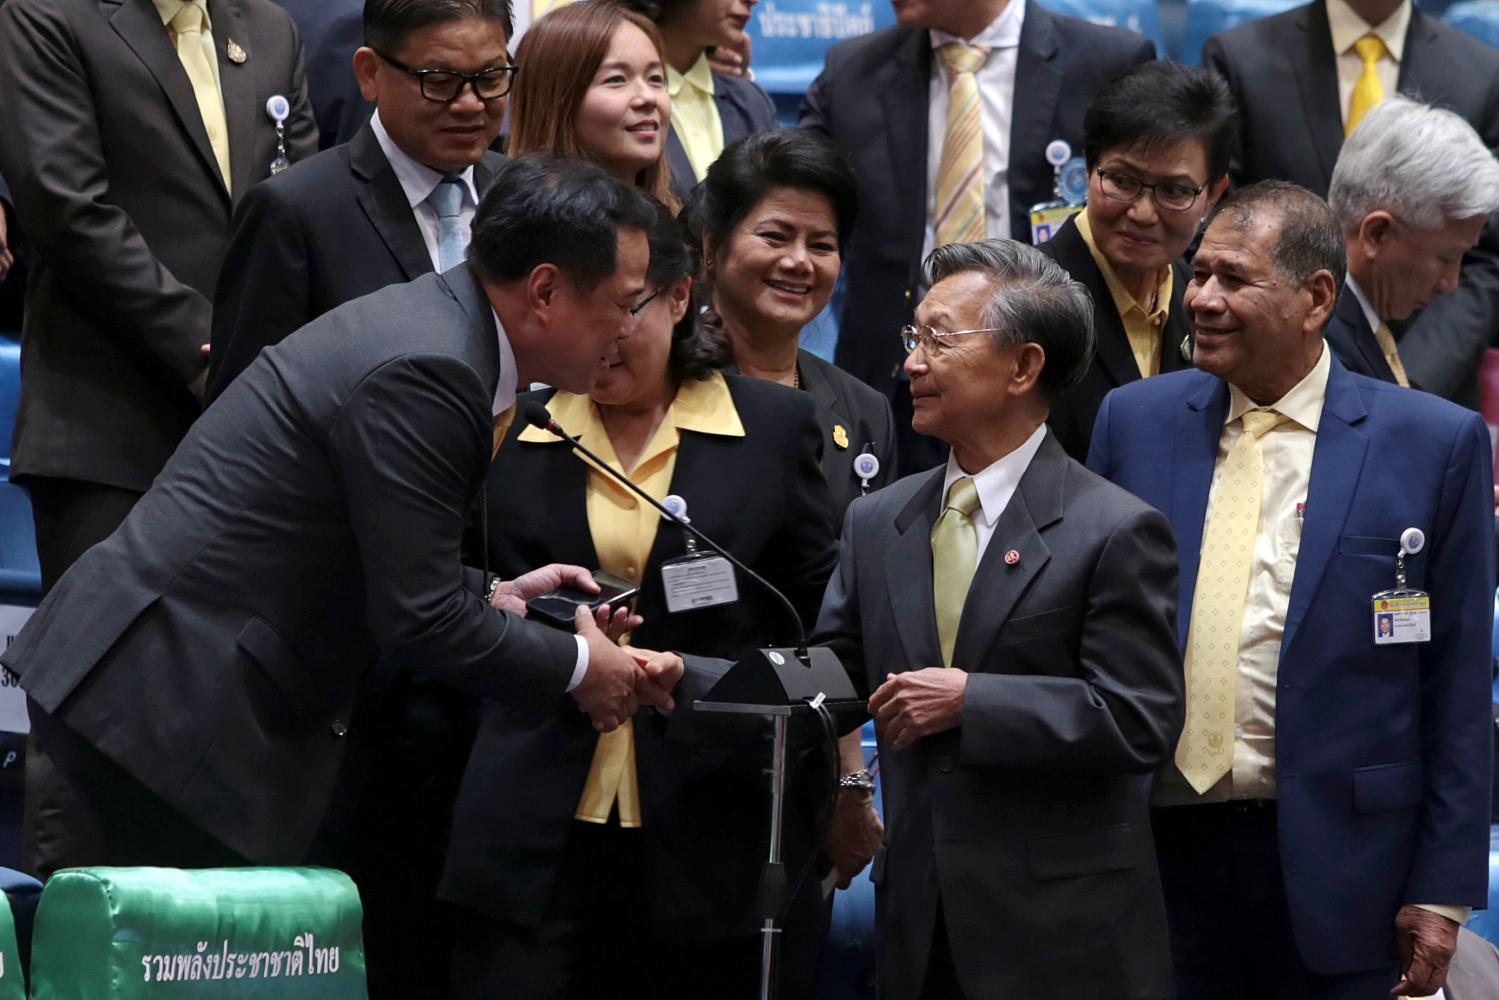 Bhumjaithai Party leader Anutin Charnvirakul, left, congratulates the Democrat Party's chief adviser Chuan Leekpai, centre, after the latter was voted House Speaker on May 25.  CHANAT KATANYU